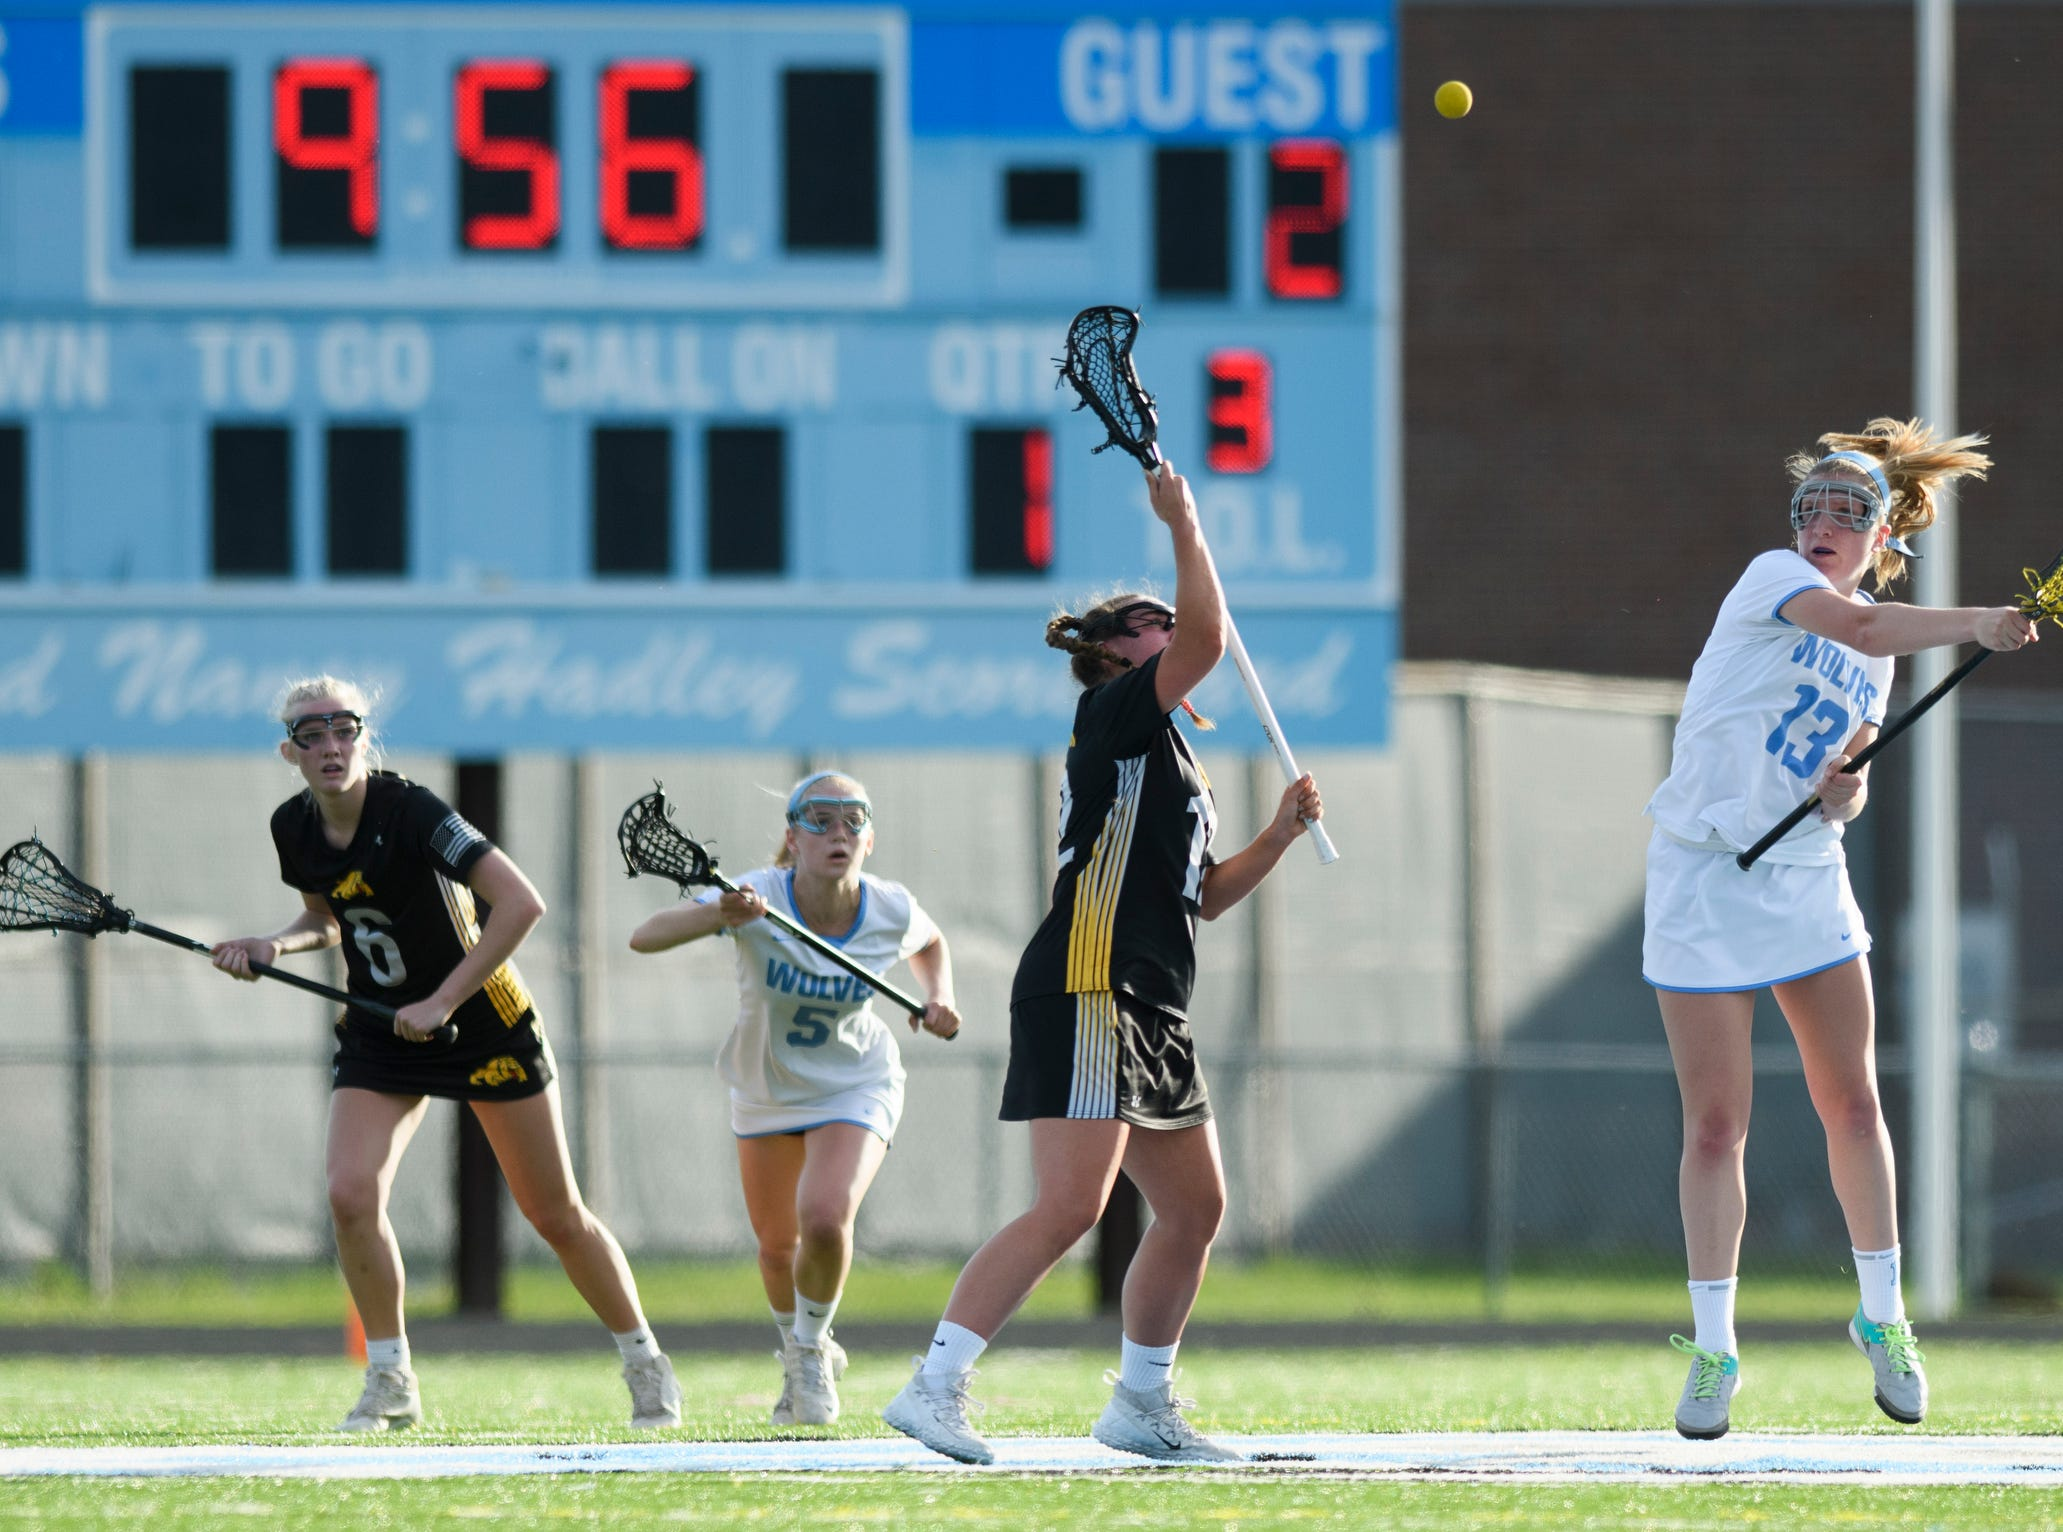 South Burlington's Caroline Desautels (13) and Burr and Burton's Olivia Watanabe (12) battle for the tip off during the high school girls lacrosse game between Burr and Burton Bulldogs and the South Burlington Wolves at Munson Field on Monday afternoon May 6, 2019 in South Burlington, Vermont.